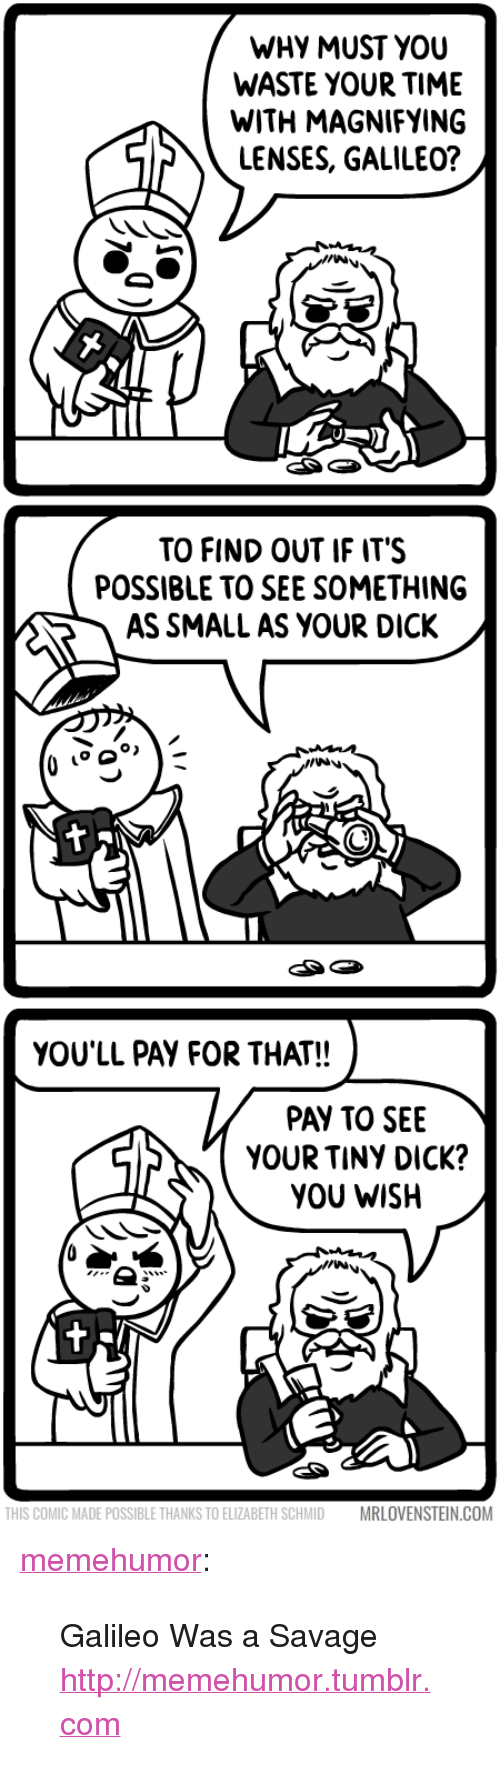 """Savage, Tumblr, and Blog: WHY MUST YOU  WASTE YOUR TIME  WITH MAGNIFYING  LENSES, GALILEO?  TO FIND OUT IF ITS  POSSIBLE TO SEE SOMETHING  AS SMALL AS YOUR DICK  YOU'LL PAY FOR THAT!!  PAY TO SEE  YOUR TINY DICK?  YOU WISH  THIS COMIC MADE POSSIBLE THANKS TO ELIZABETH SCHMID  MRLOVENSTEIN.COM <p><a href=""""http://memehumor.tumblr.com/post/150971216353/galileo-was-a-savage-httpmemehumortumblrcom"""" class=""""tumblr_blog"""">memehumor</a>:</p>  <blockquote><p>Galileo Was a Savage<br/><a href=""""http://memehumor.tumblr.com""""><span style=""""color: #0000cd;""""><a href=""""http://memehumor.tumblr.com"""">http://memehumor.tumblr.com</a></span></a></p></blockquote>"""